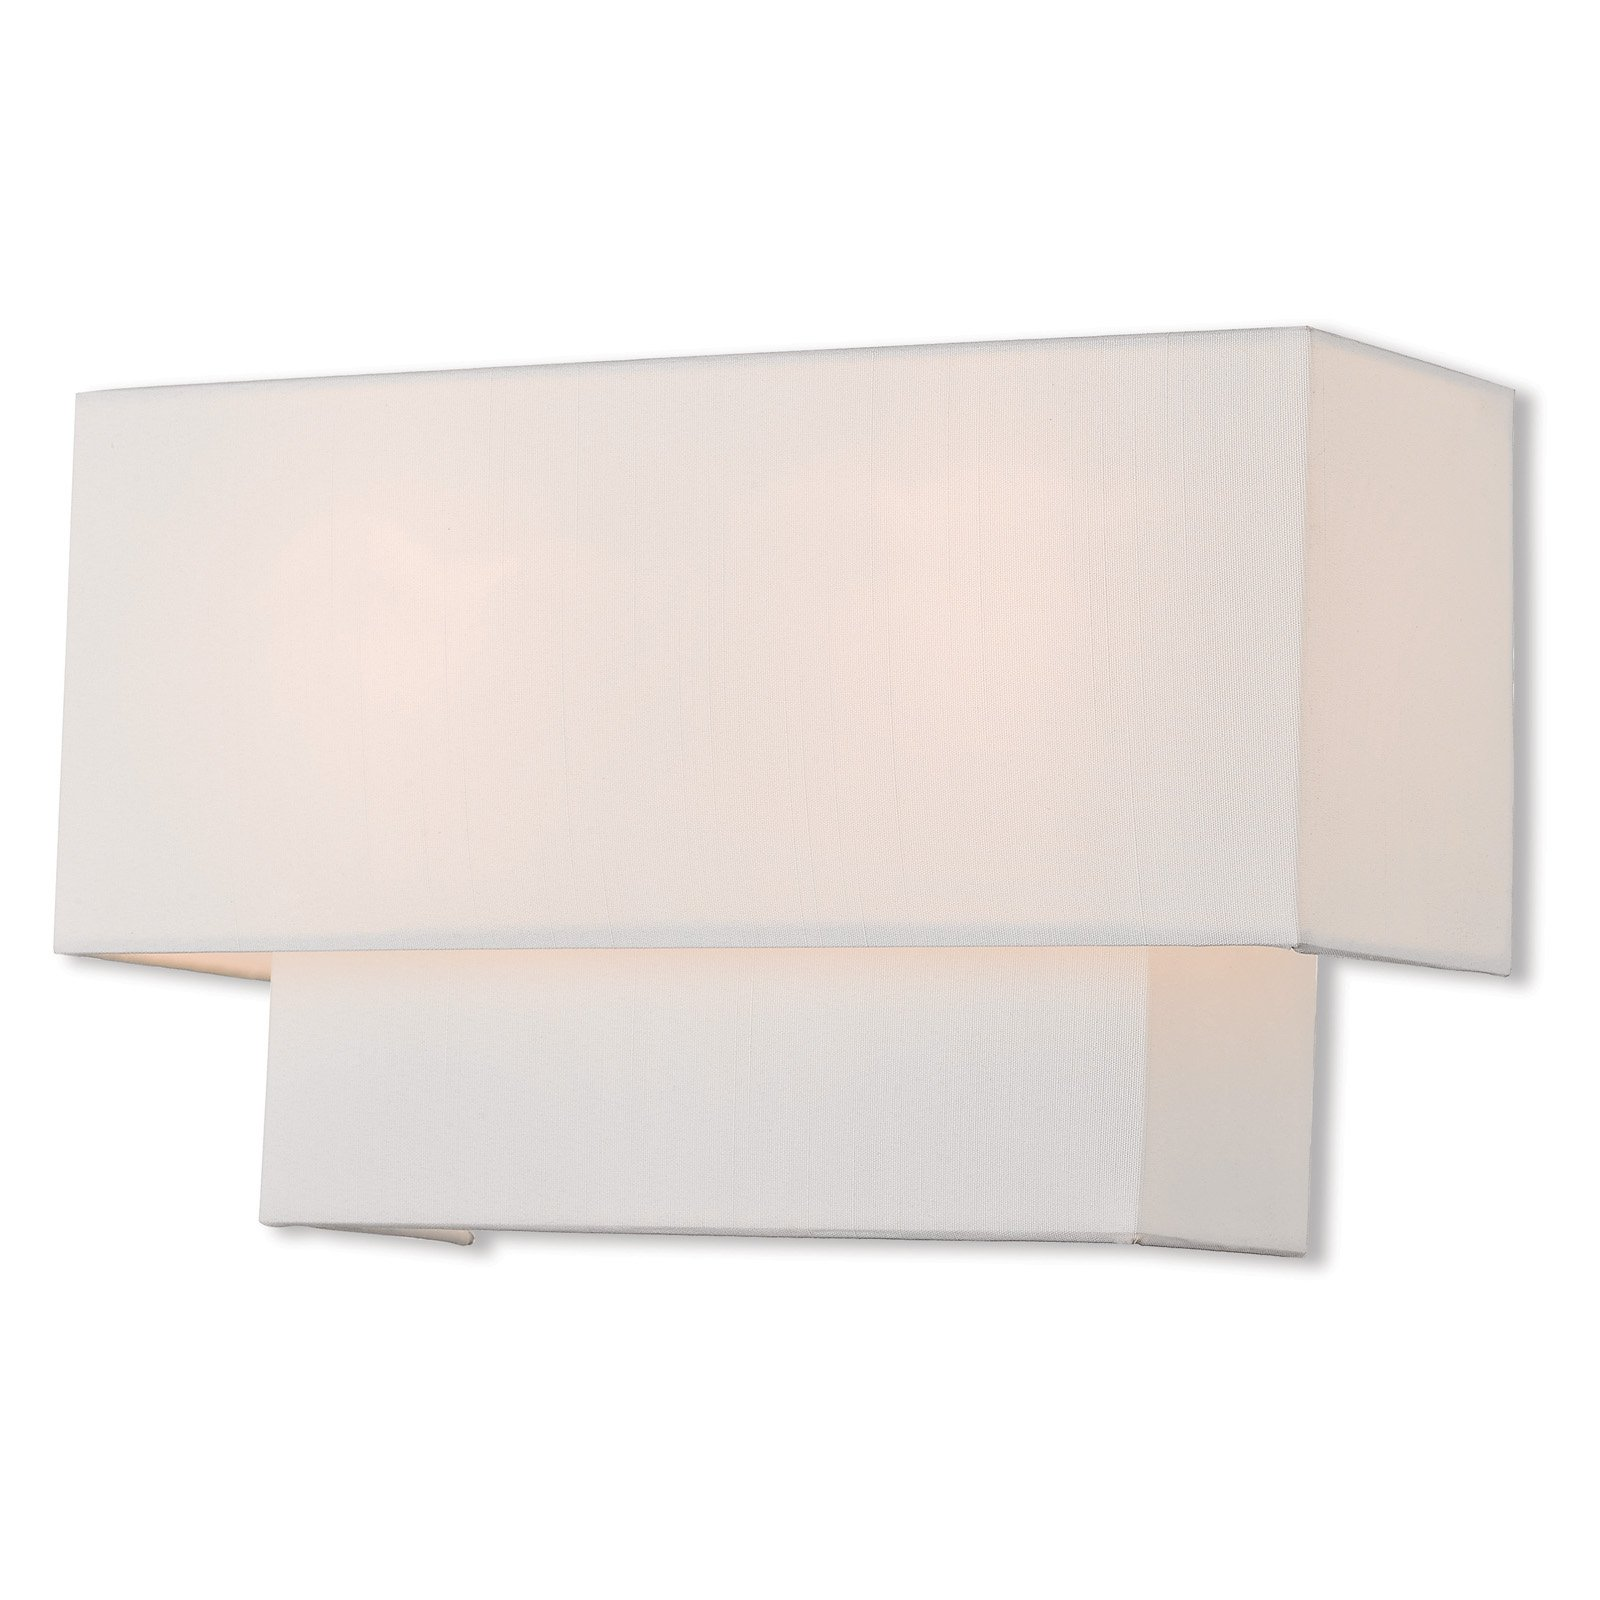 Livex Lighting Claremont 2 Light ADA Wall Sconce by Livex Lighting, Inc.